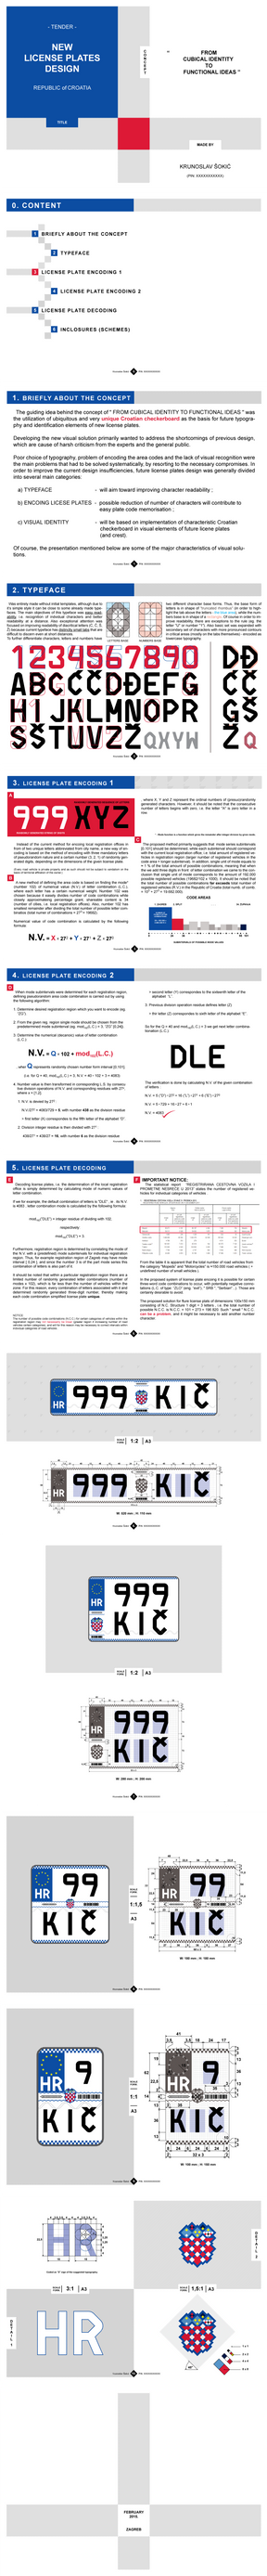 LICENSE PLATE DESIGN - Rebublic of Croatia by model850